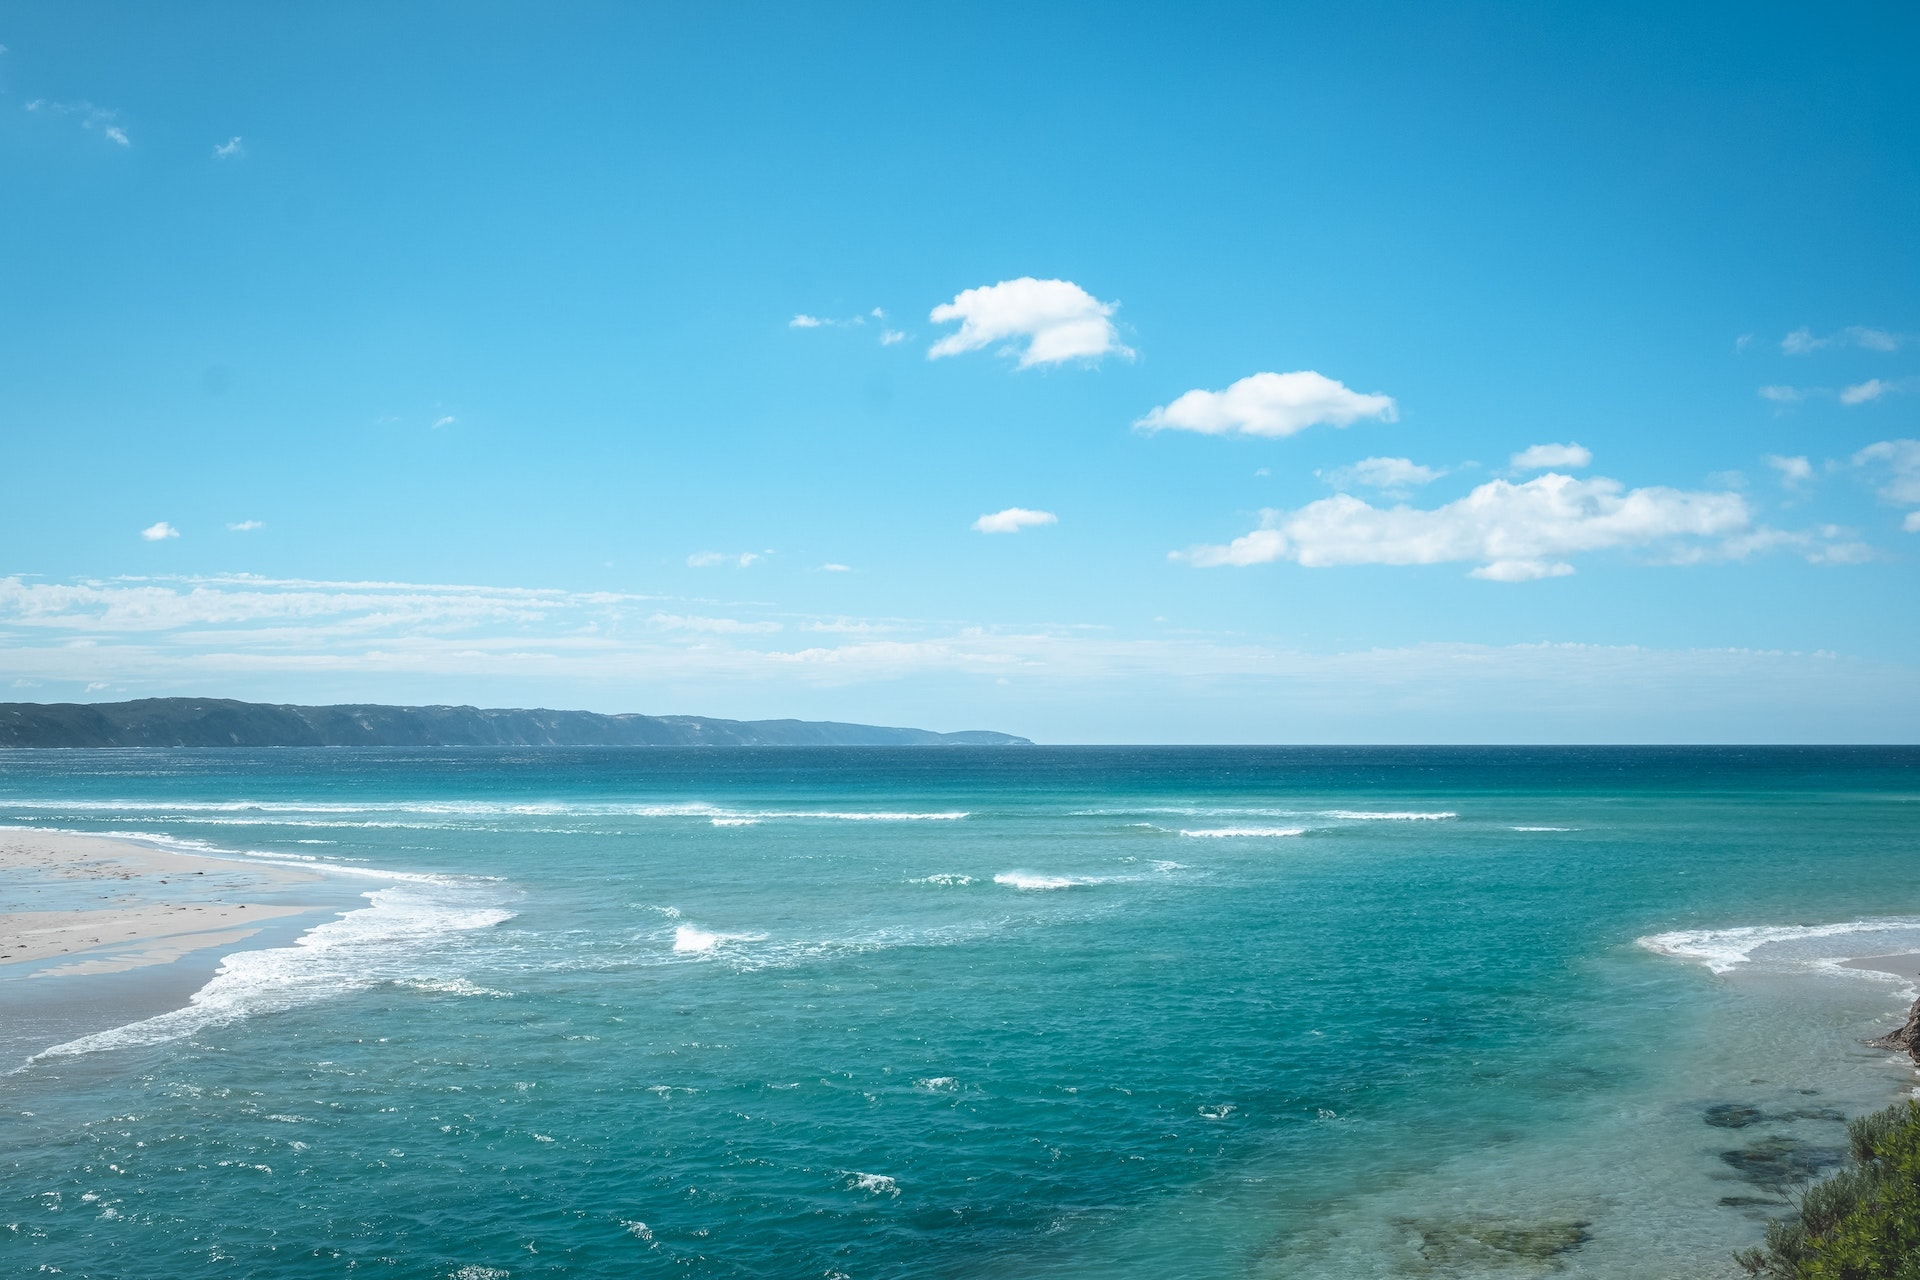 Breathtaking view of vast turquoise sea waving peacefully under cloudless blue sky on sunny day in tropical resort